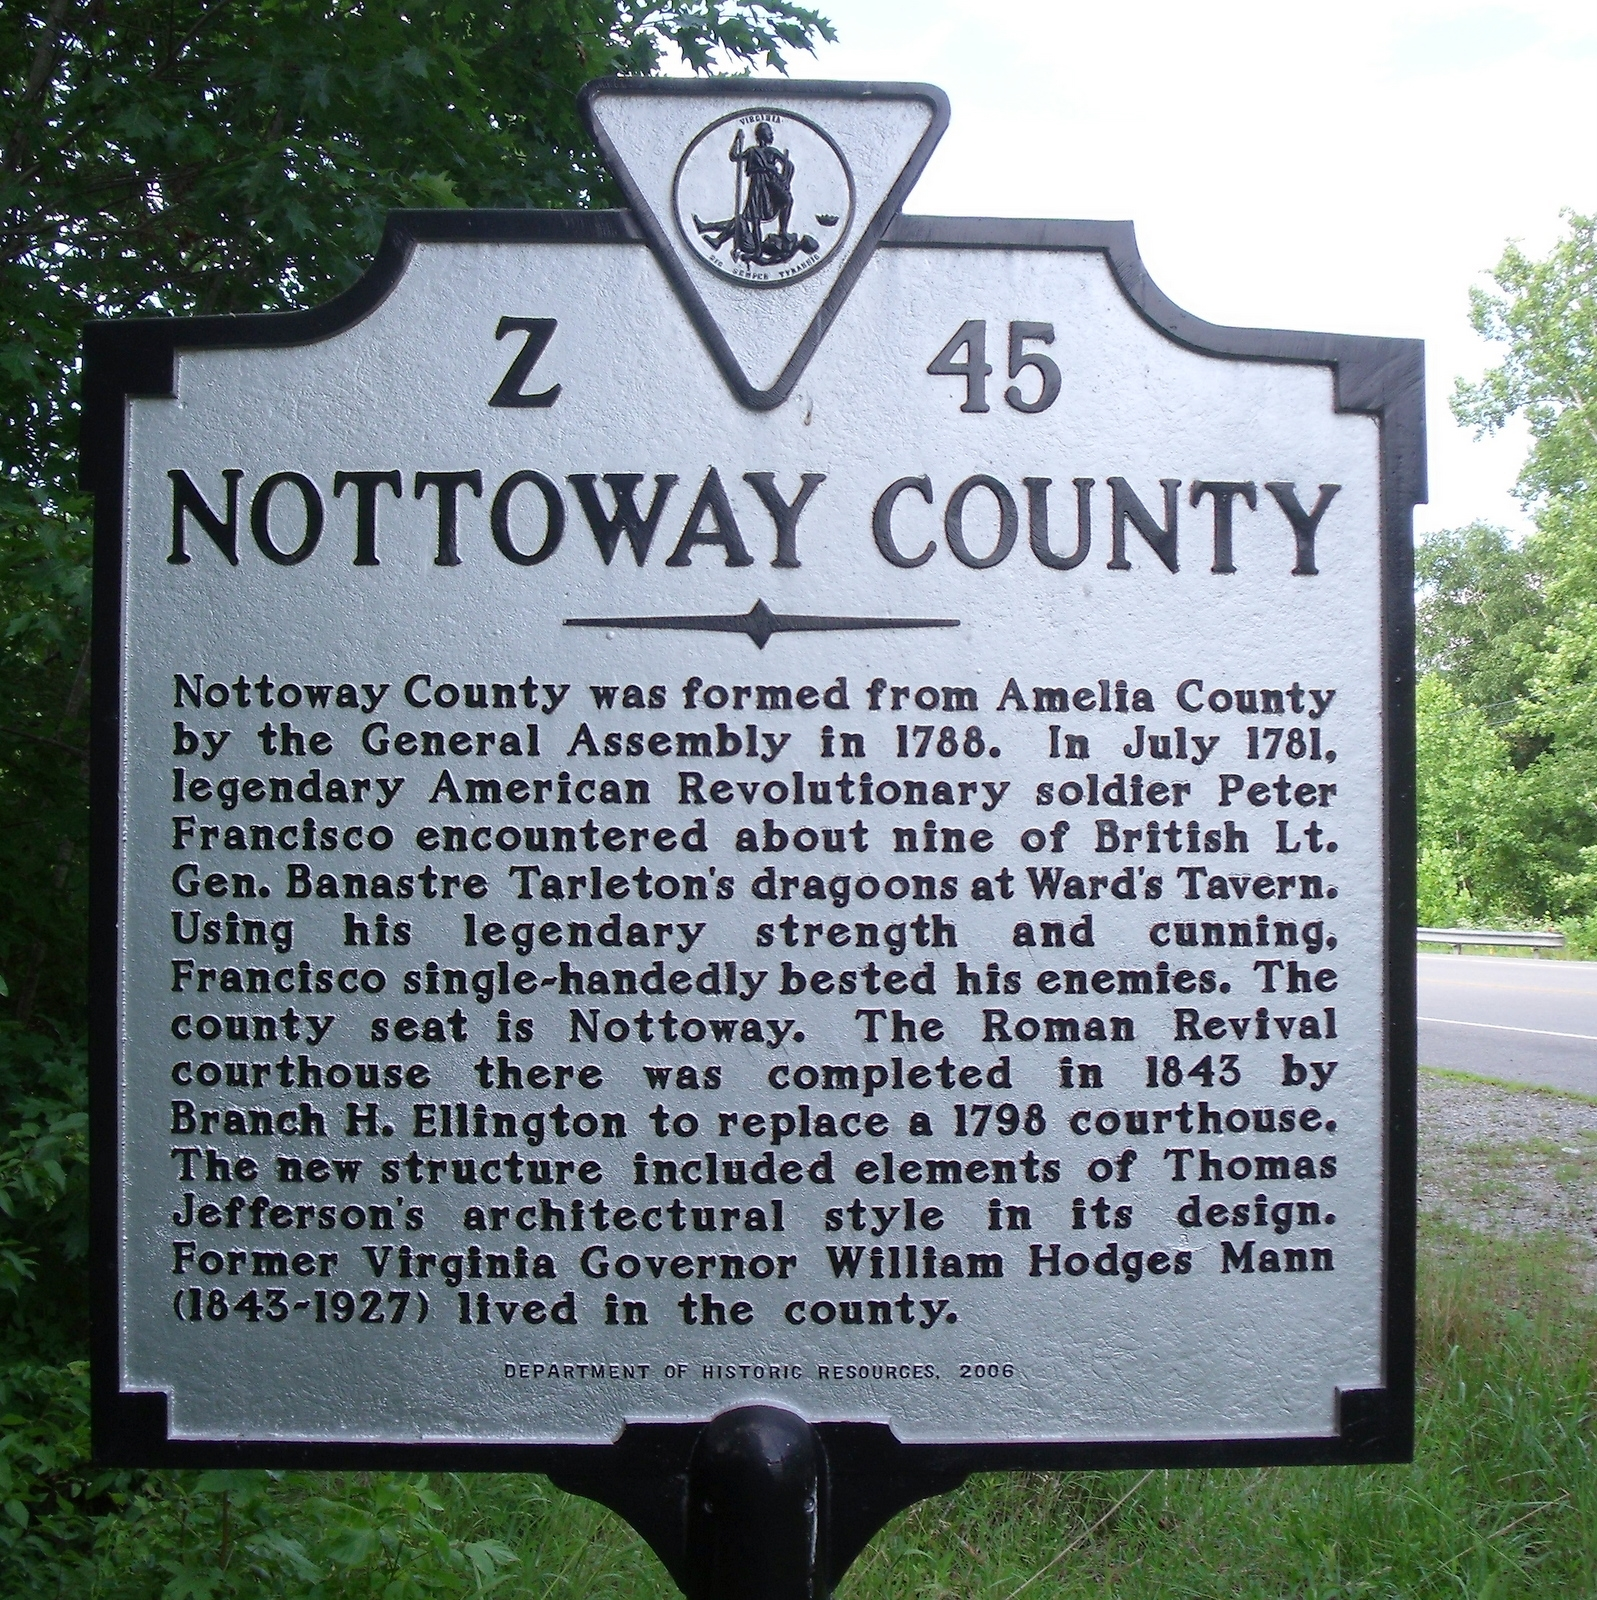 nottoway county buddhist singles 65 single family homes for sale in nottoway county va view pictures of homes, review sales history, and use our detailed filters to find the perfect place.